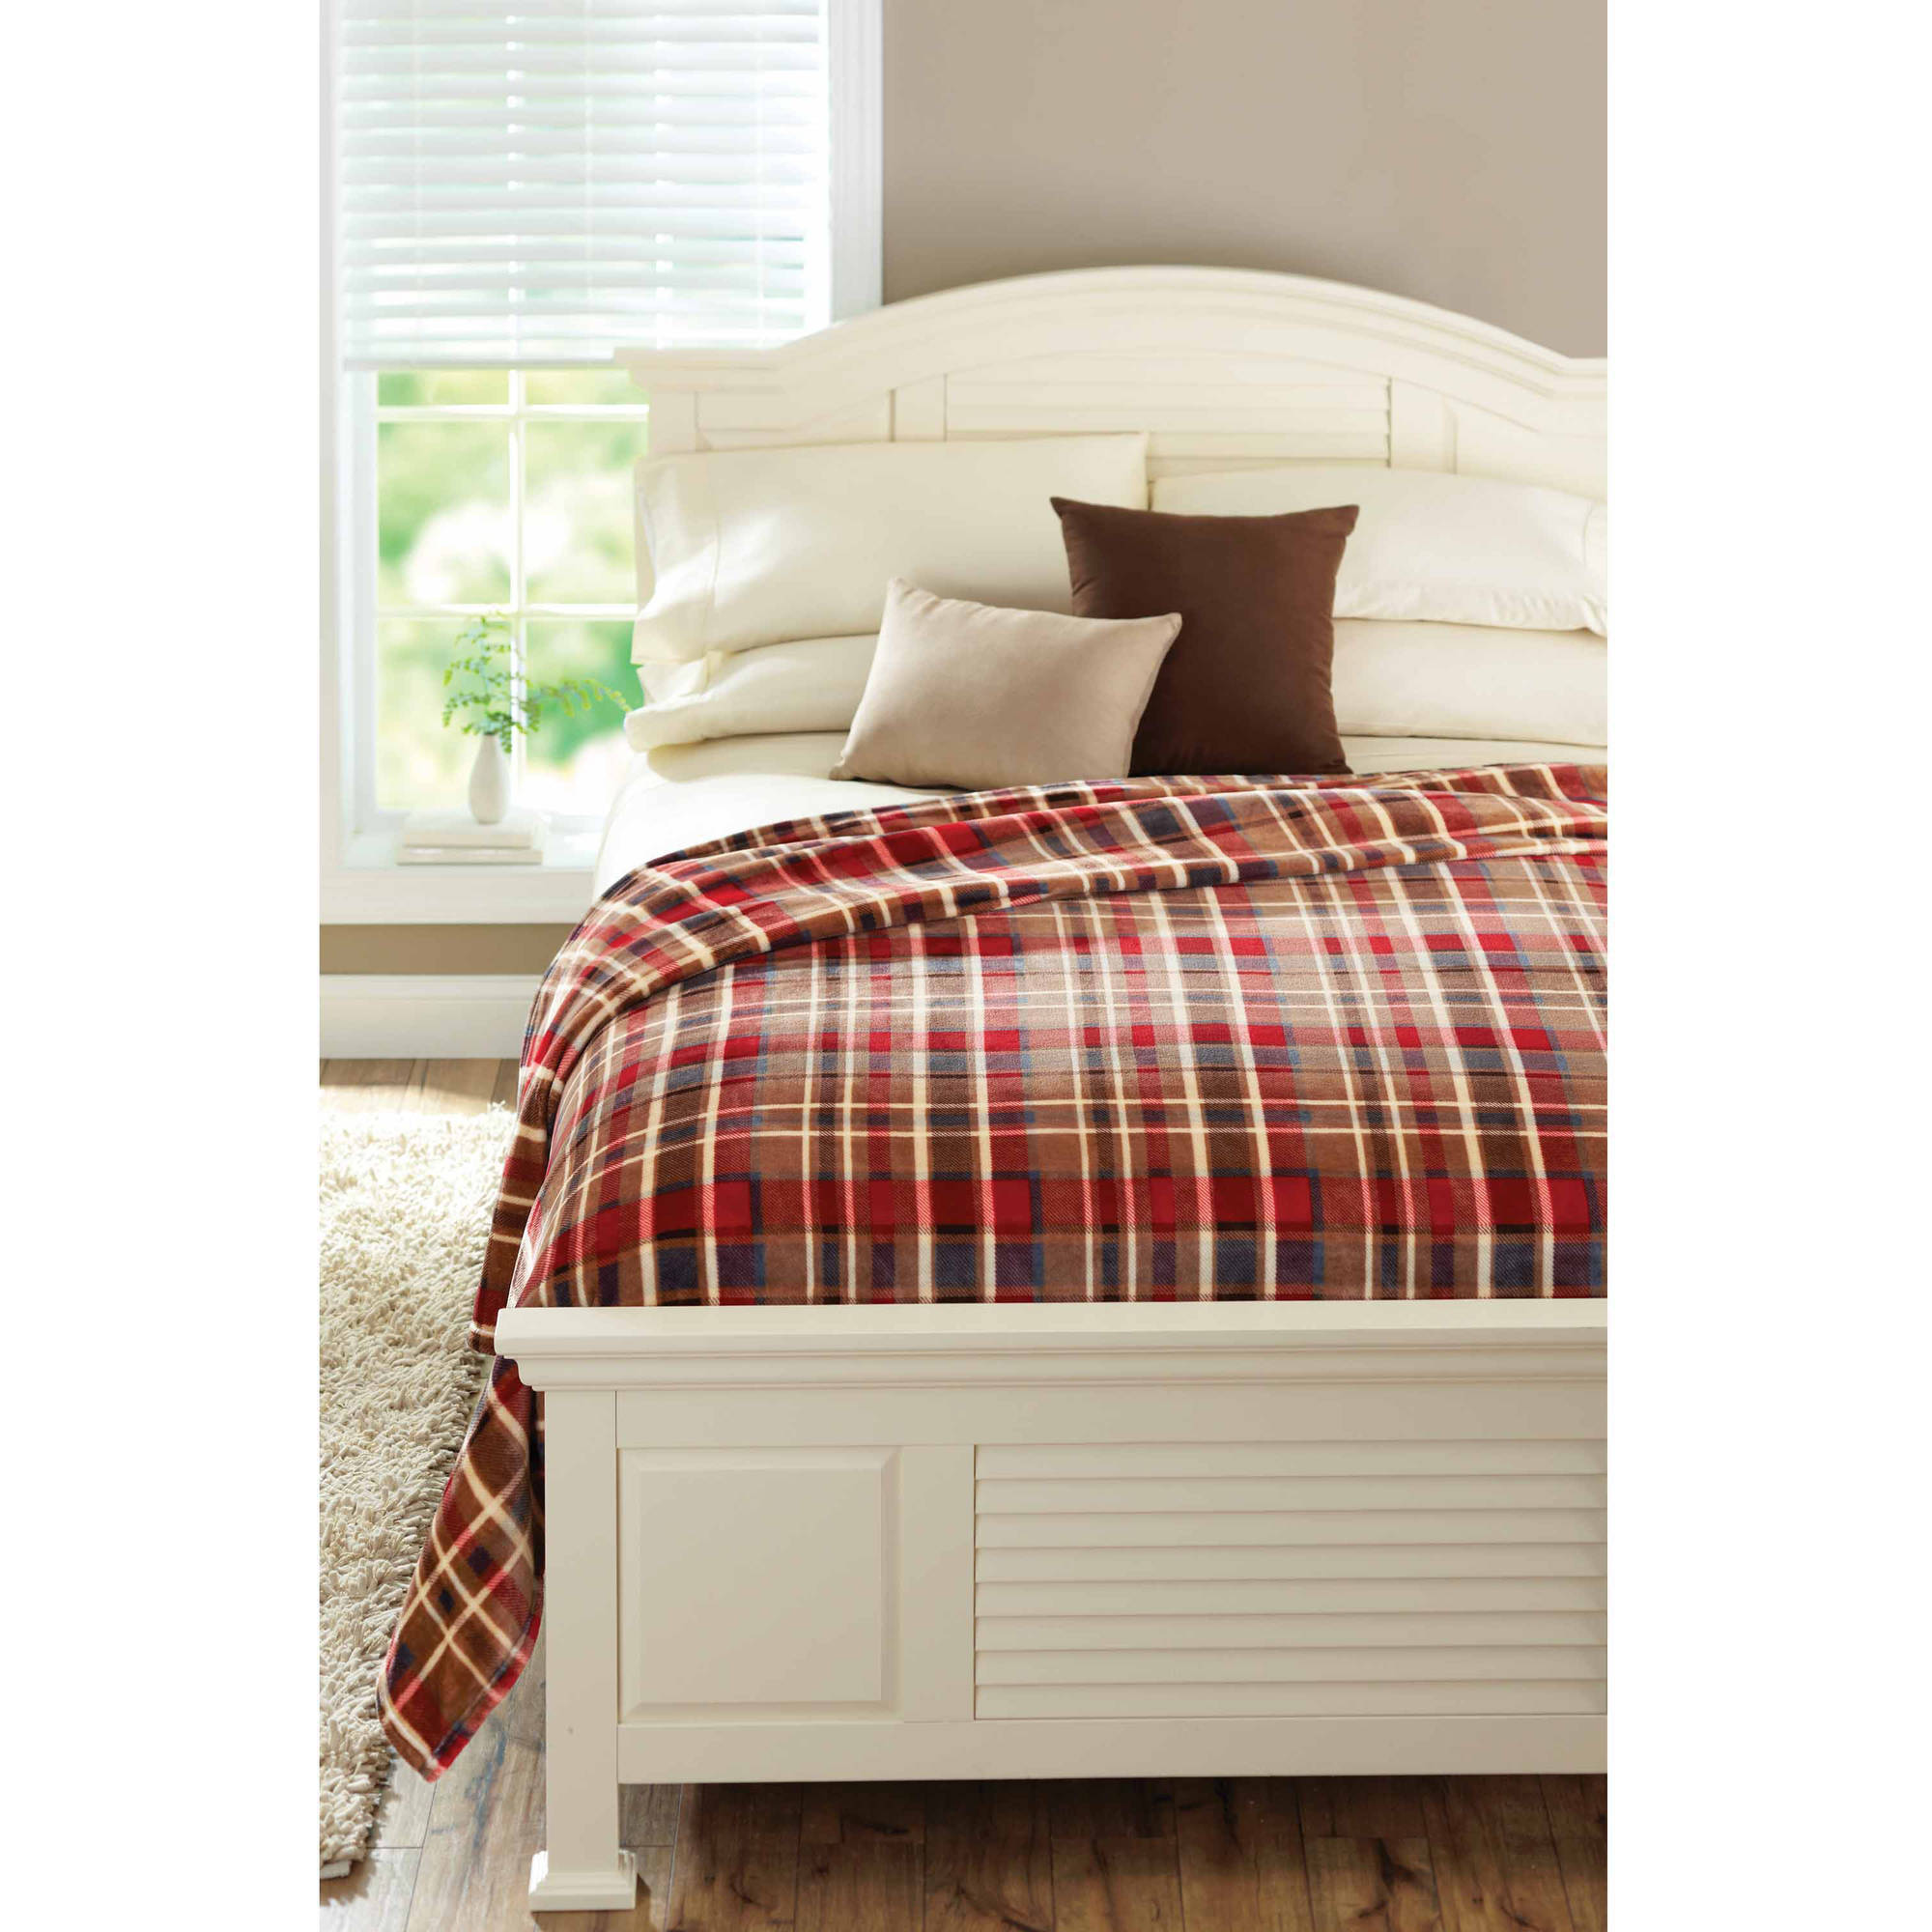 Better Homes and Gardens Royal Plush Blanket, Plaid